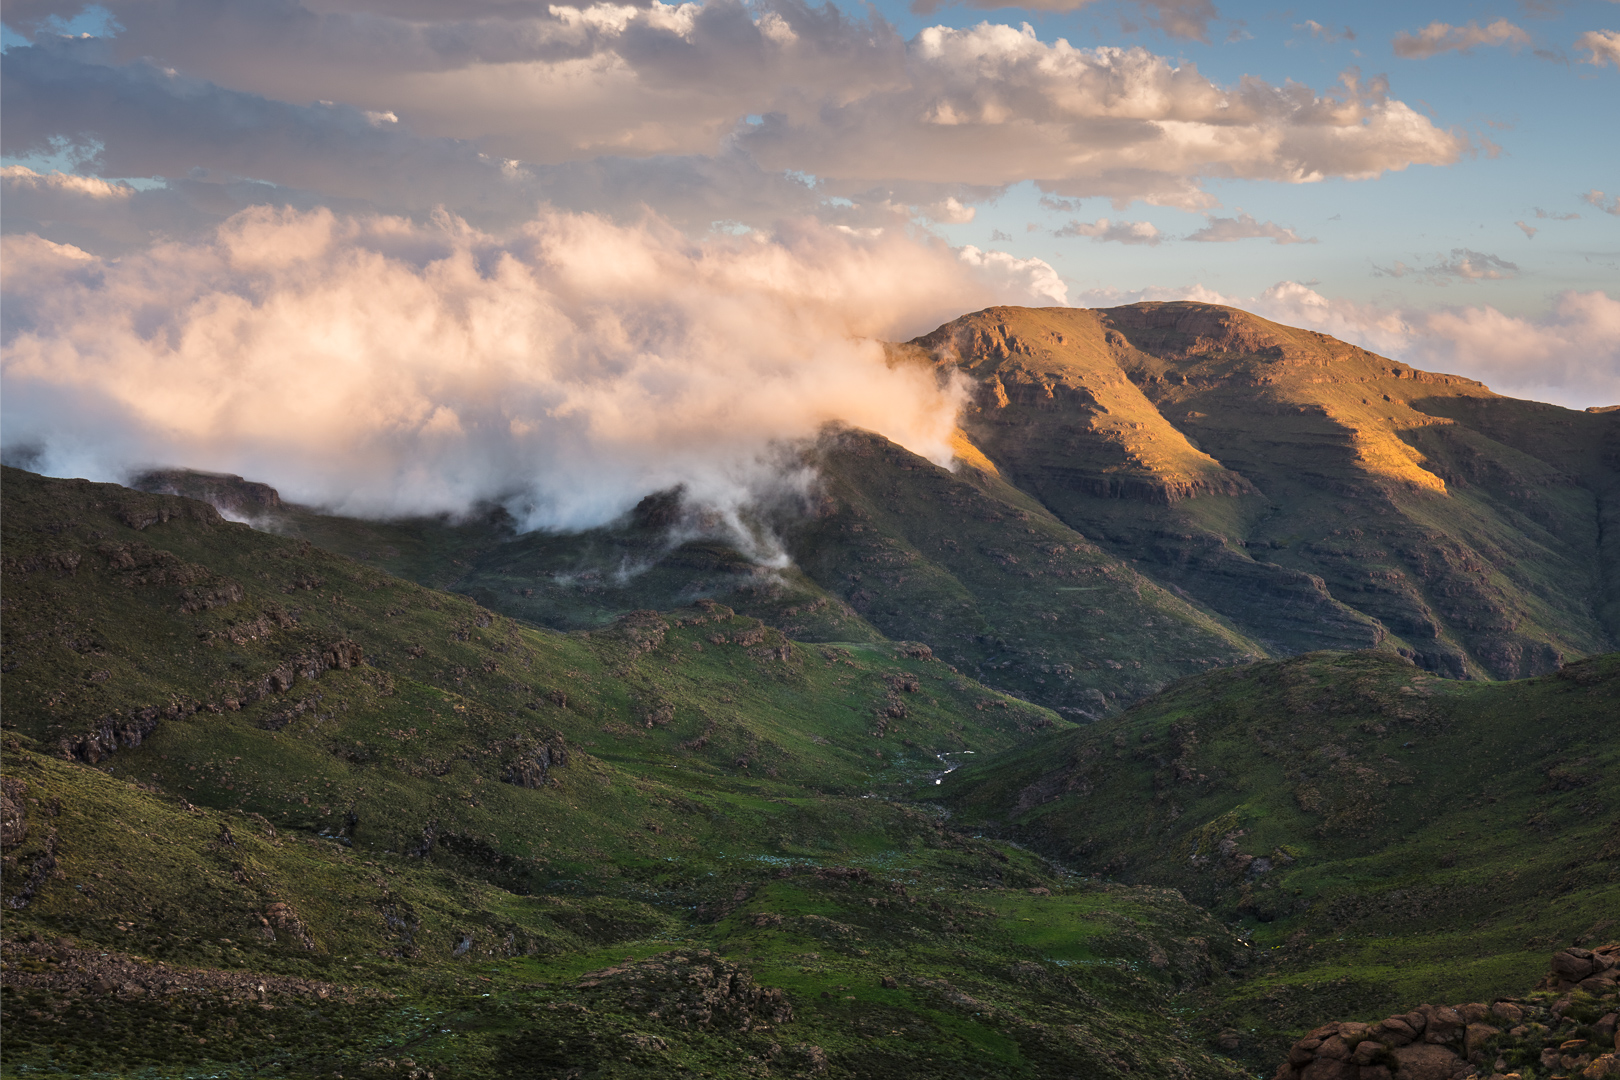 Last light on the hills of Lesotho. Sadly Cleft Peak was clouded out for sunset.